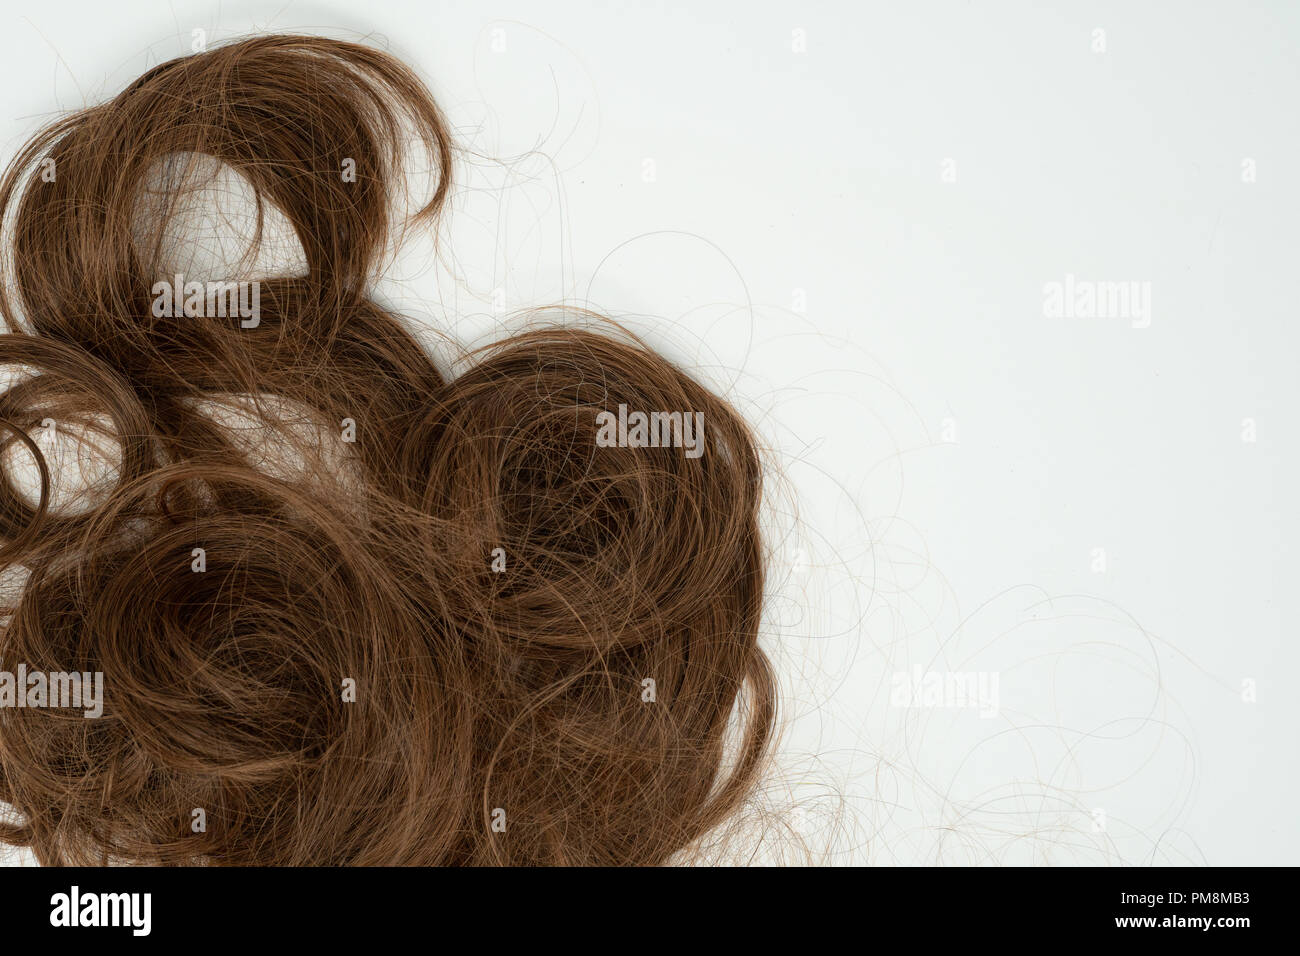 Locks of beautiful brown hair curls isolated on white background - Stock Image